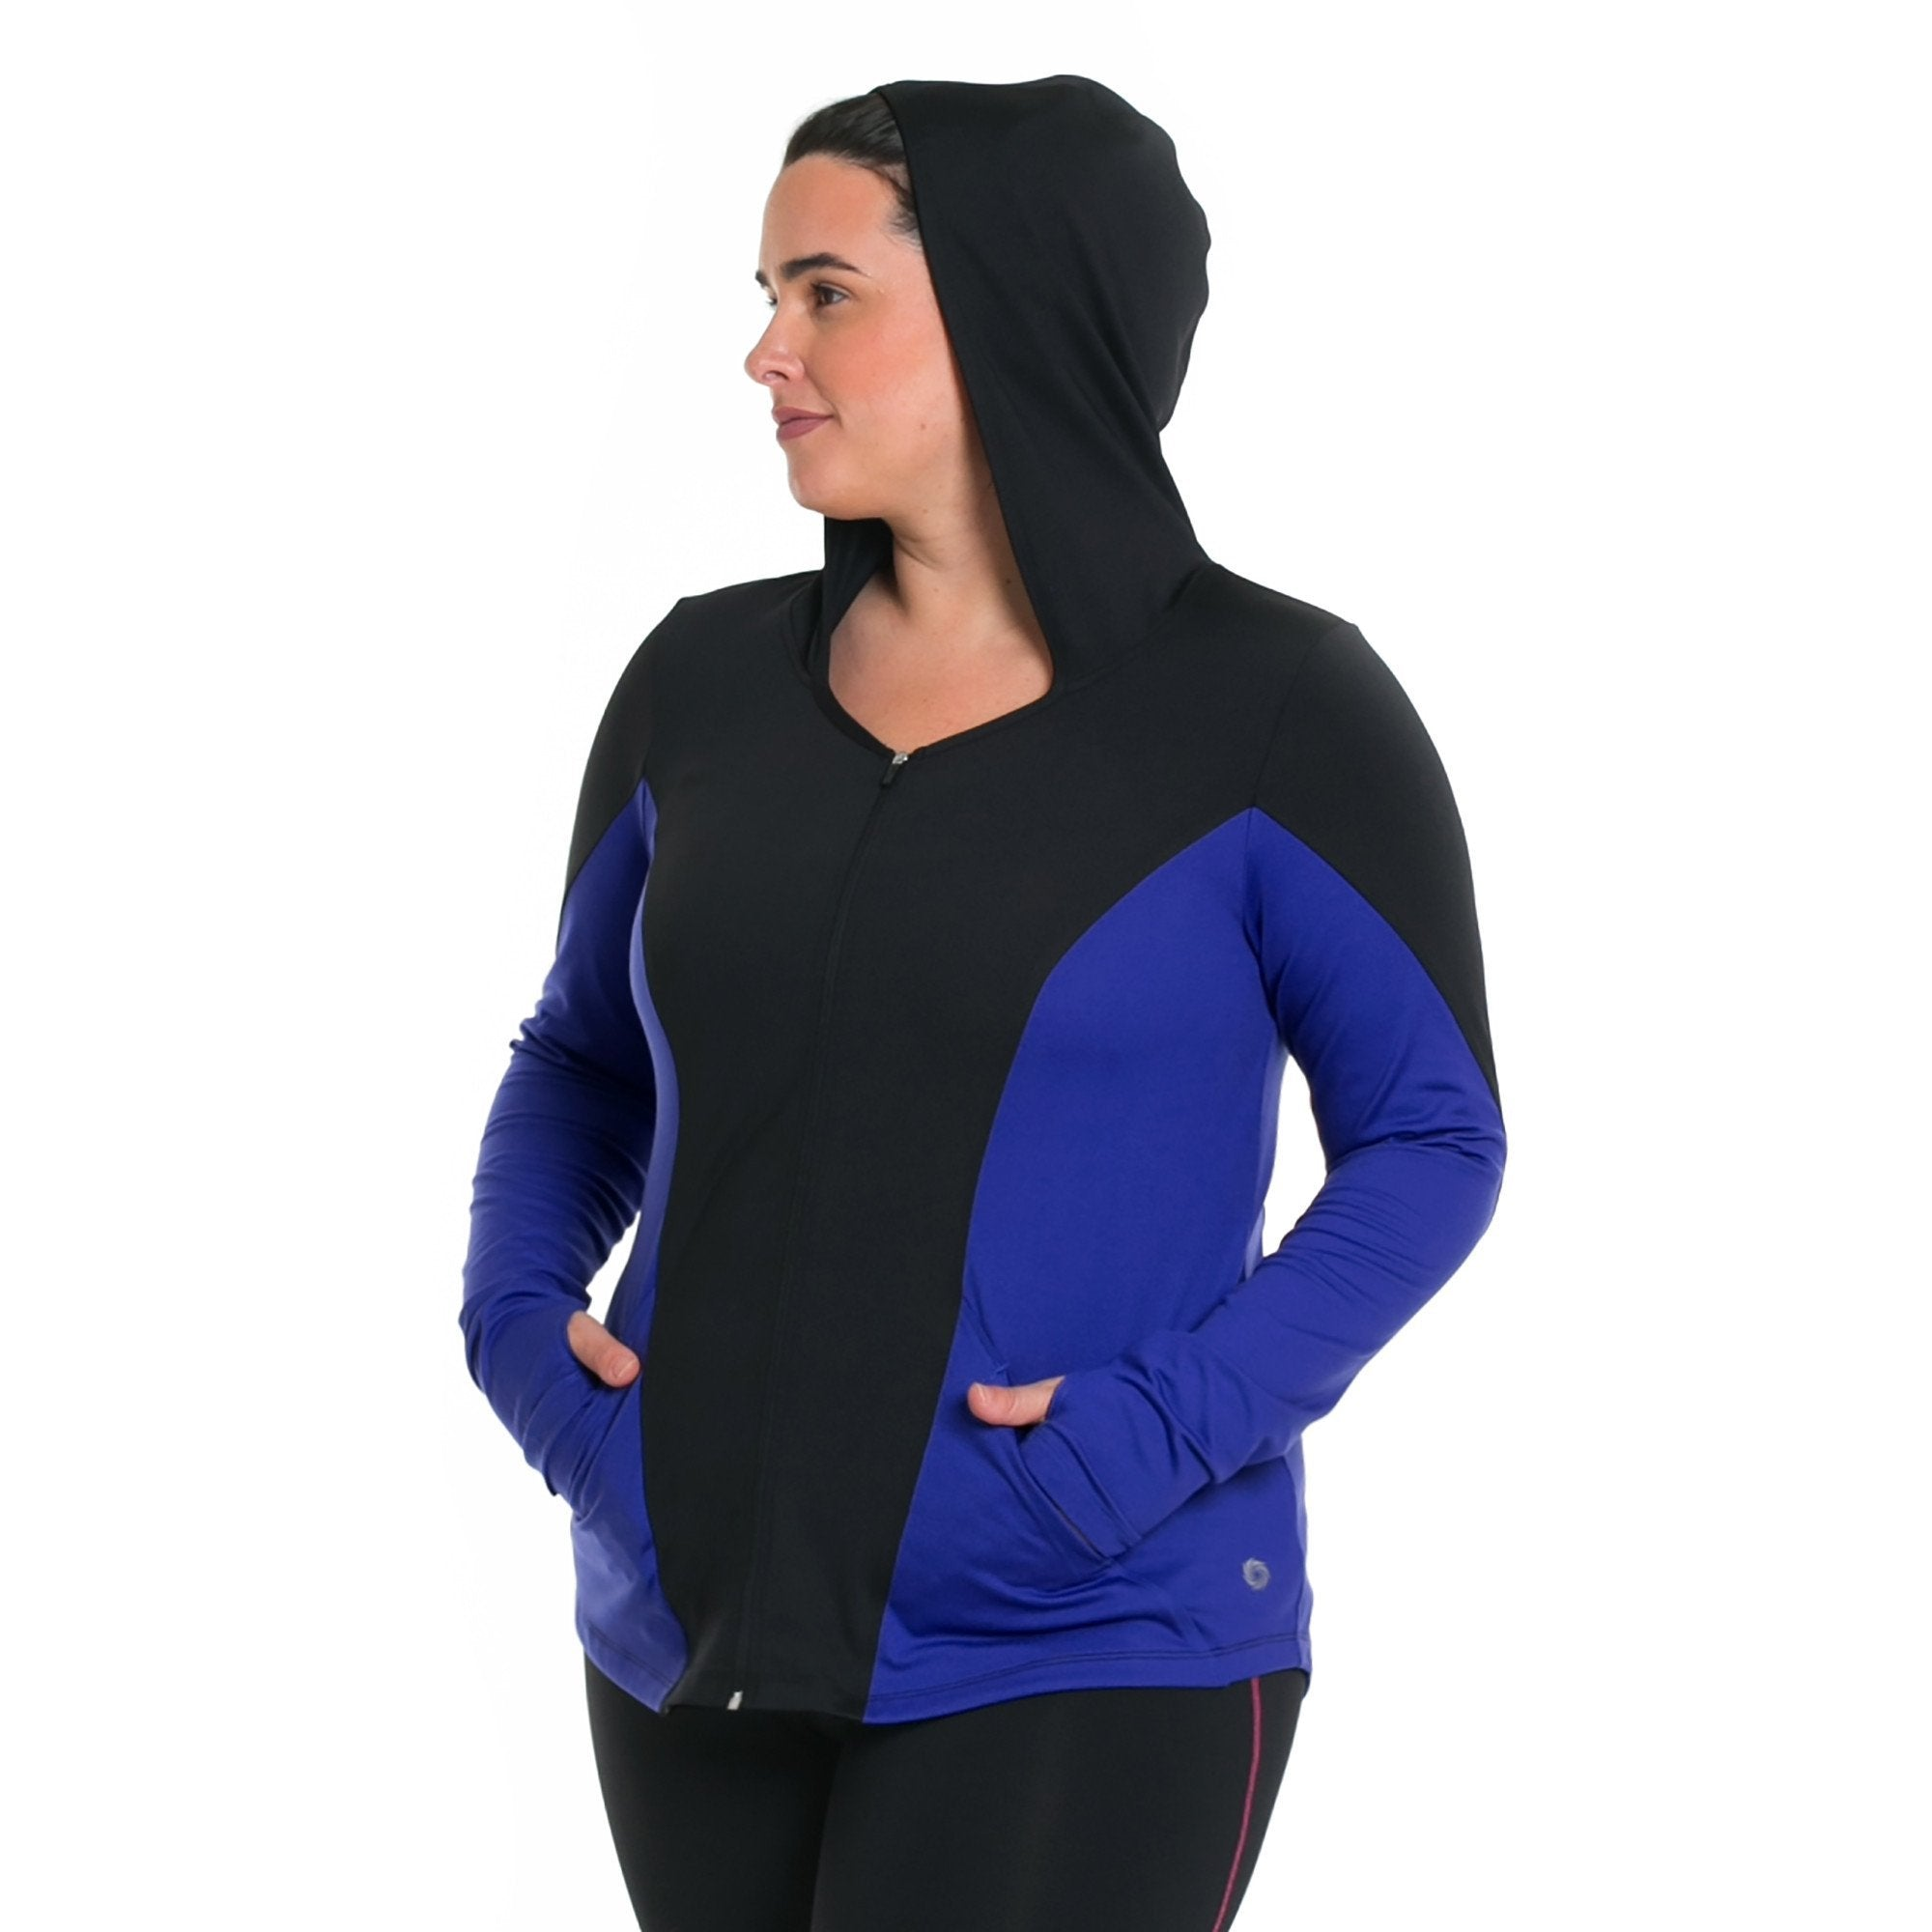 Xela Jacket - Rainbeau Curves, 14/16 / Cobalt, activewear, athleisure, fitness, workout, gym, performance, womens, ladies, plus size, curvy, full figured, spandex, cotton, polyester - 1